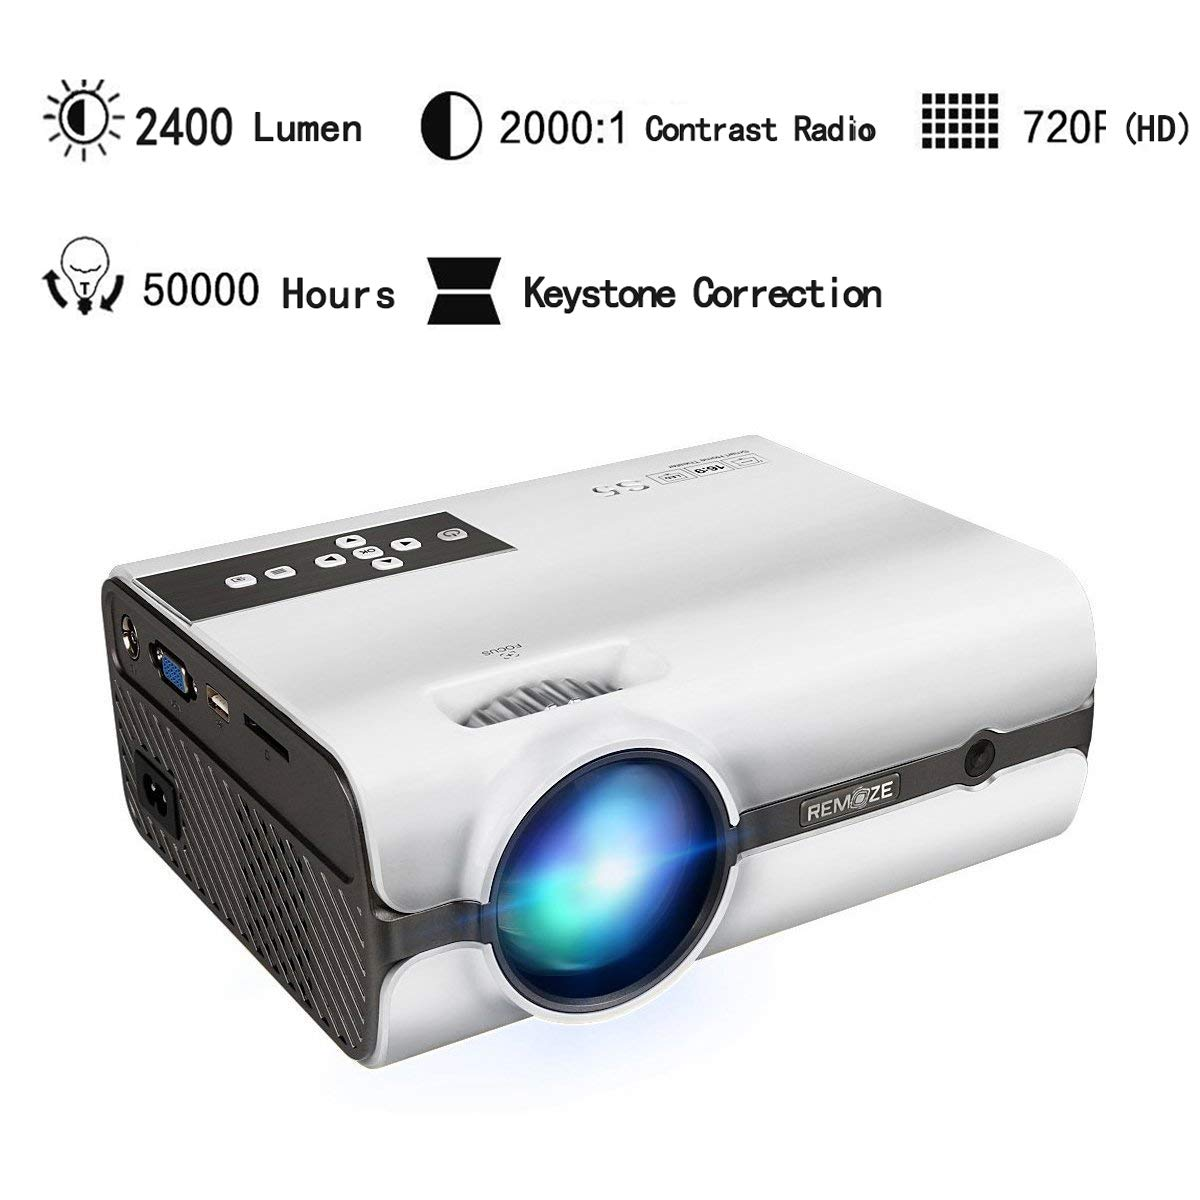 EZAPOR LED Mini Video Projector 2400 Lumen Support 1080 P Portable Projector for Home Theater Cinema Movie Entertainment Games Parties White S5